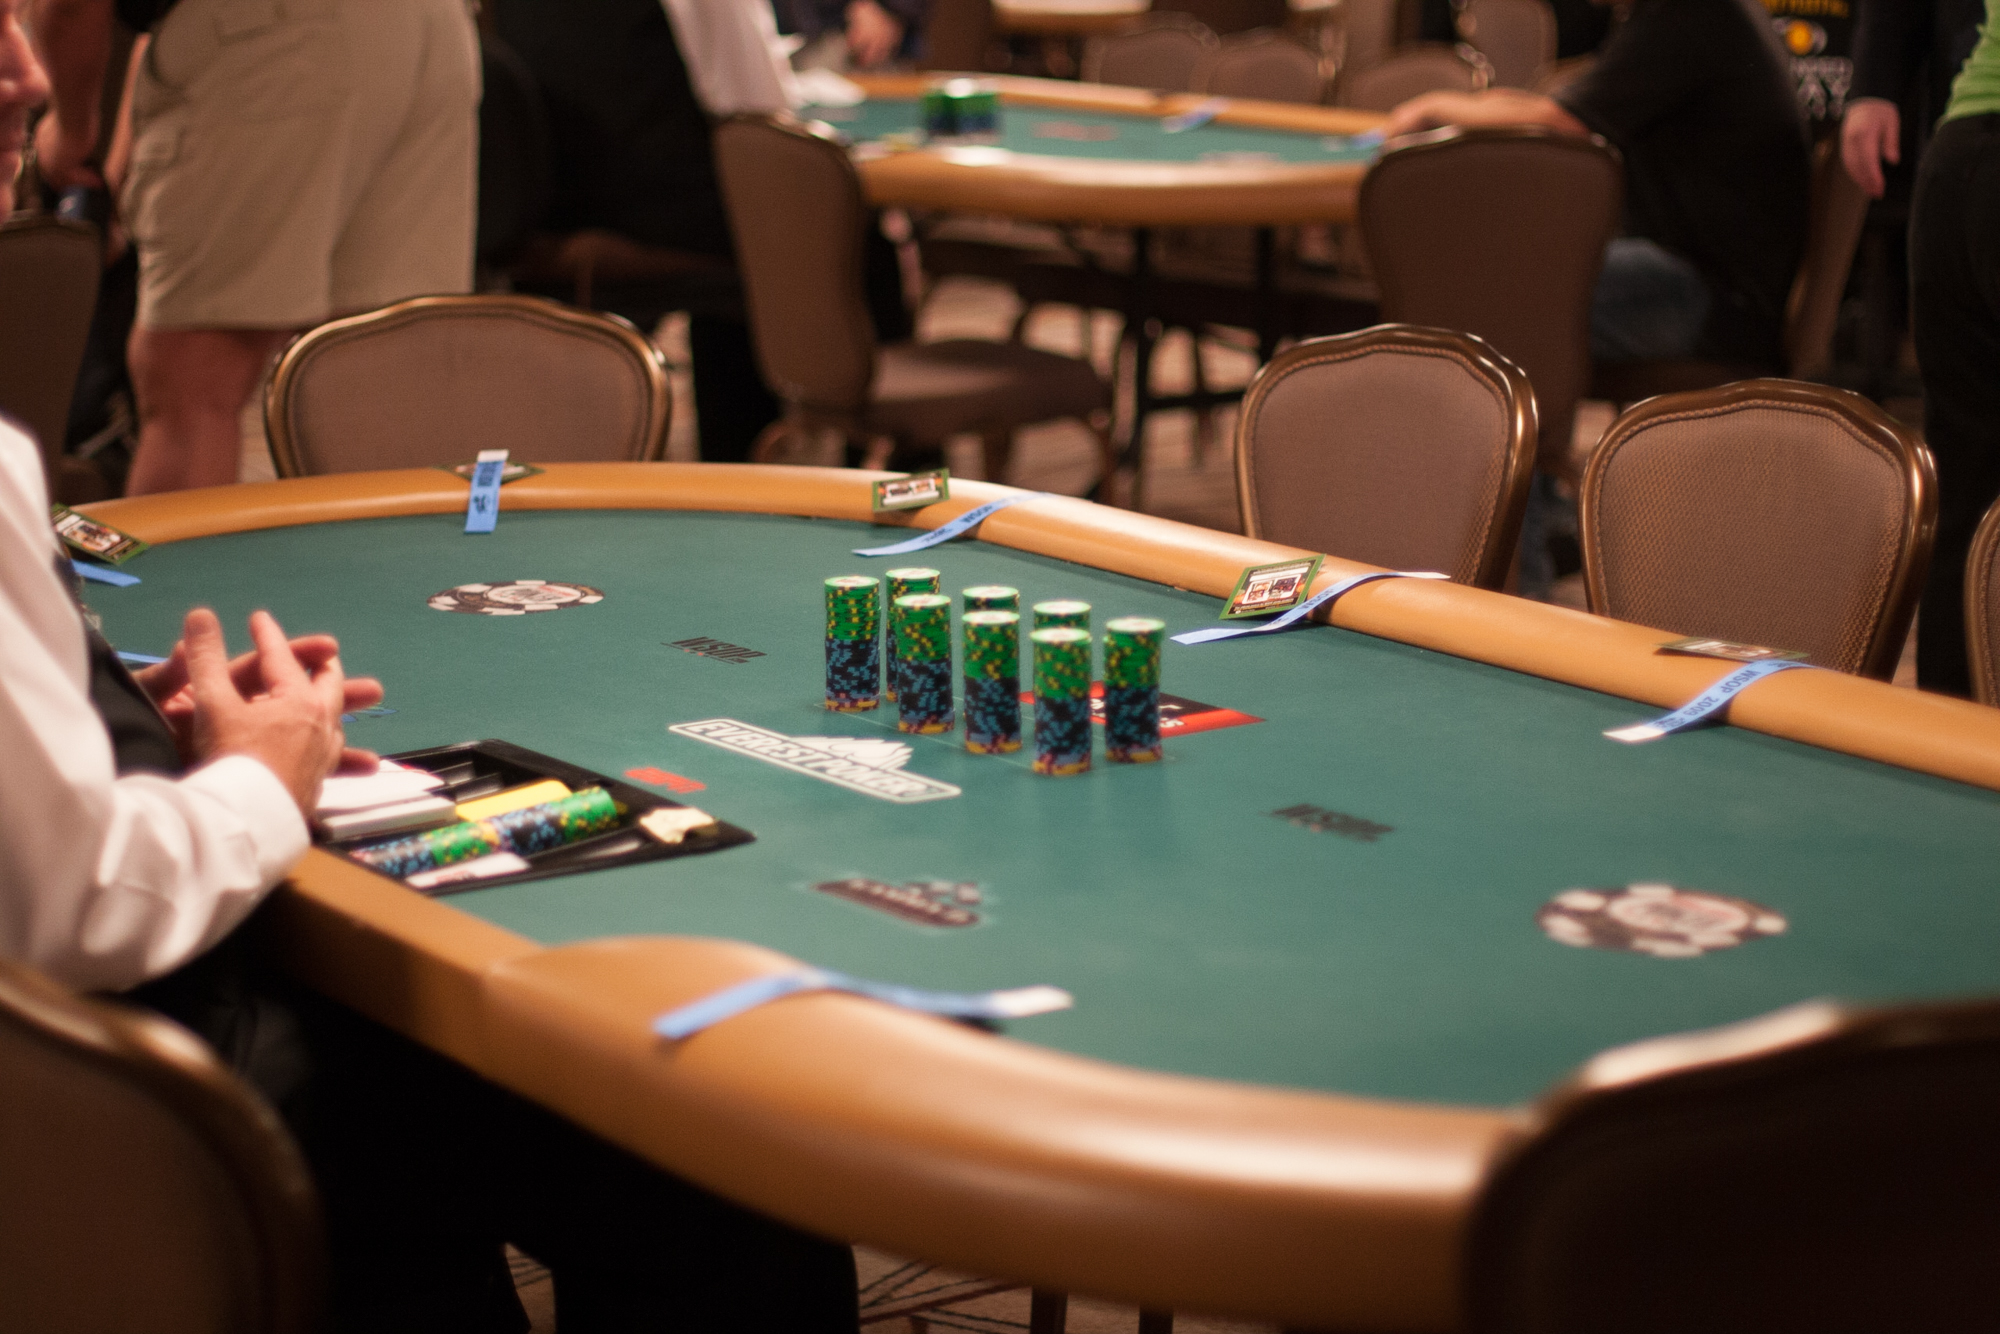 Imagine that you're a poker player playing a cash game at your local casino.You've been playing since the table first opened for the day and have built a very sizable chip stack. -